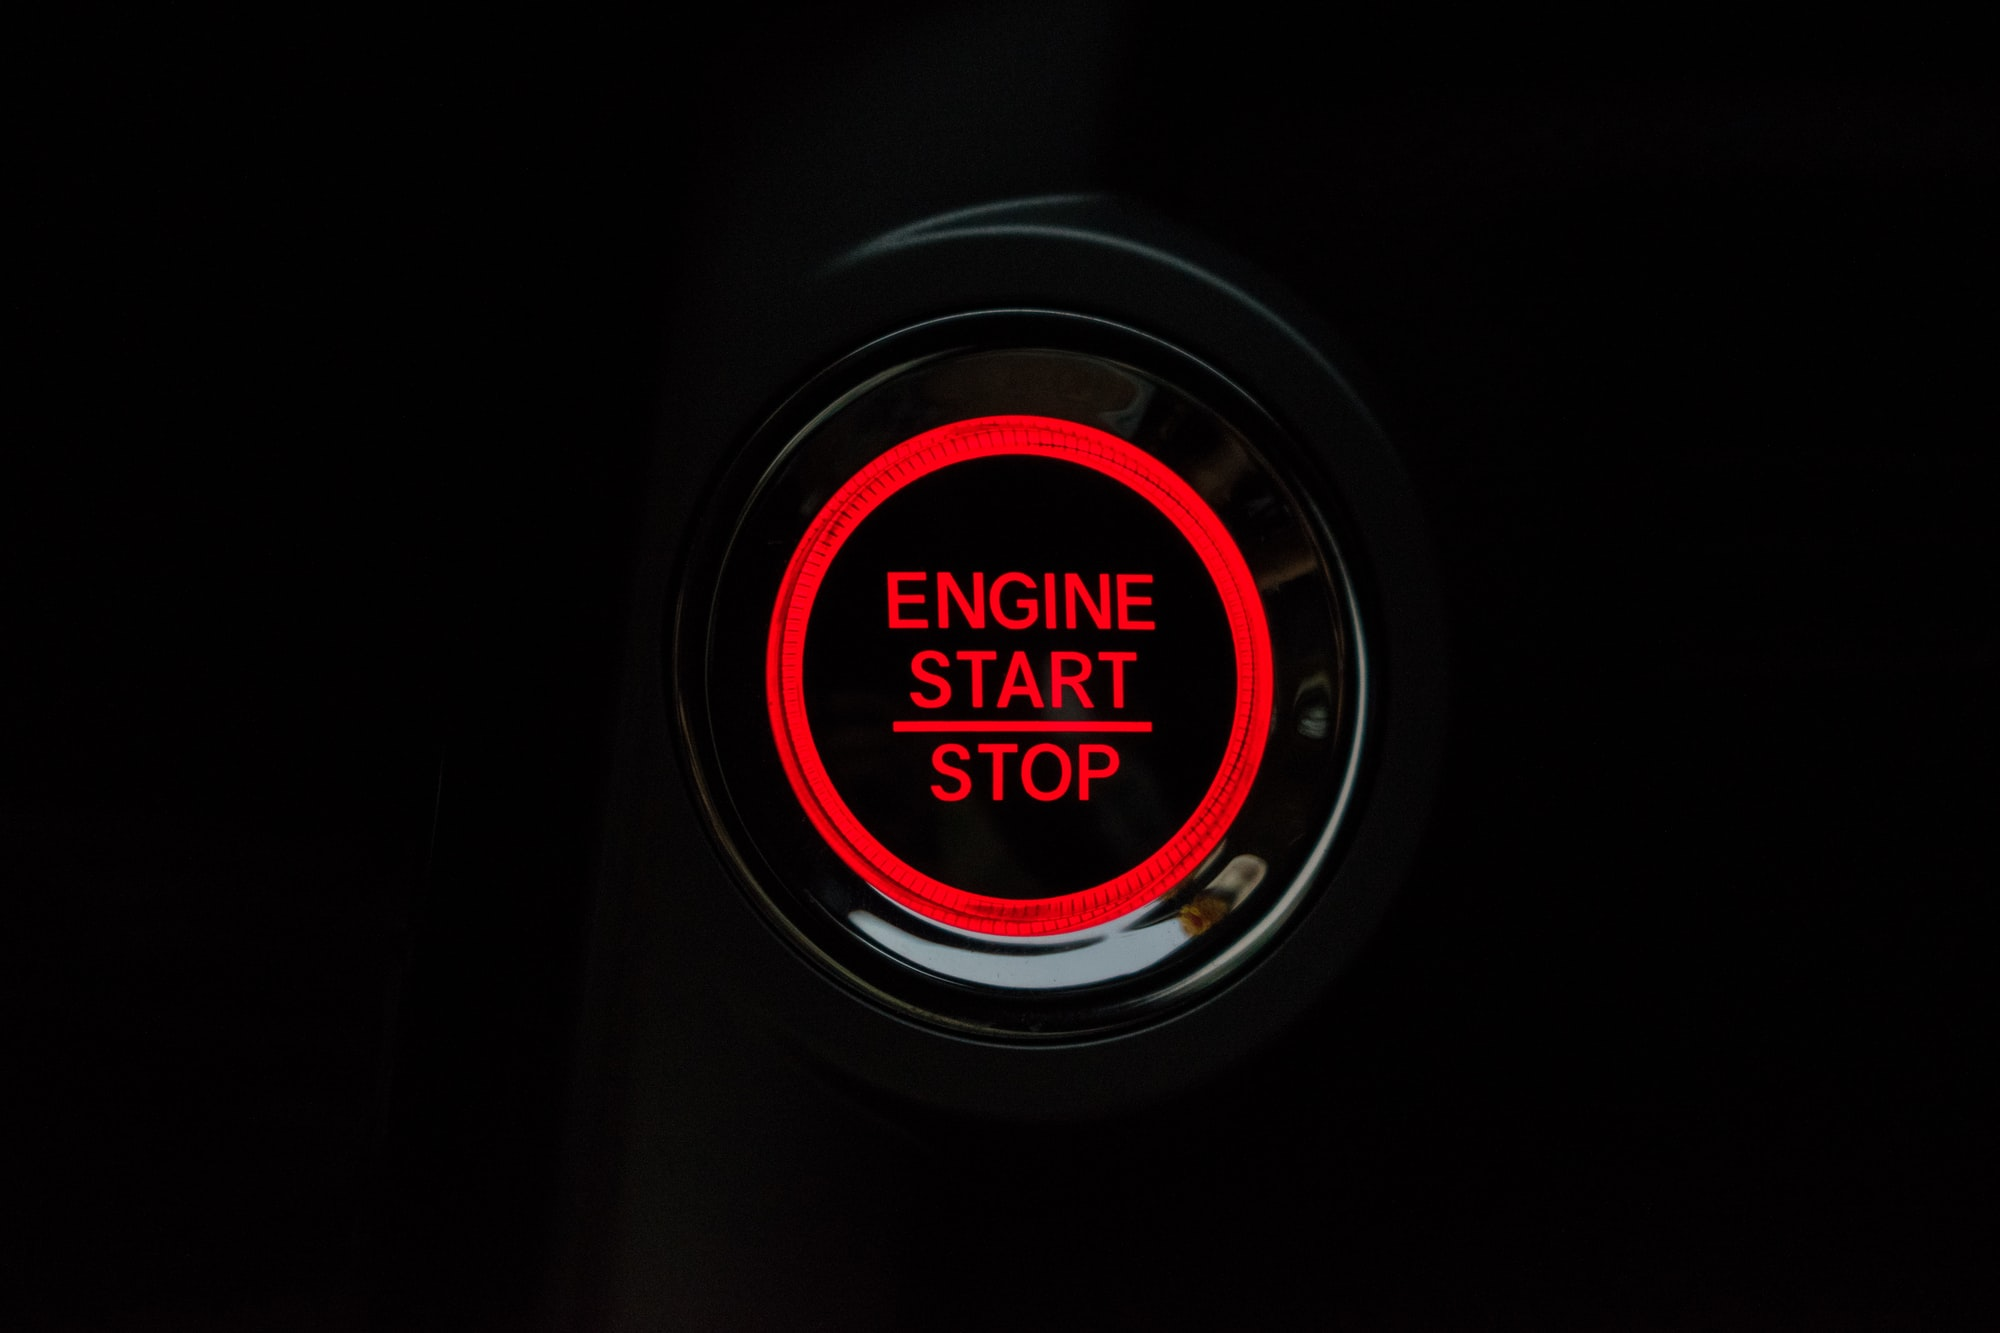 Engine start stop button of Honda City